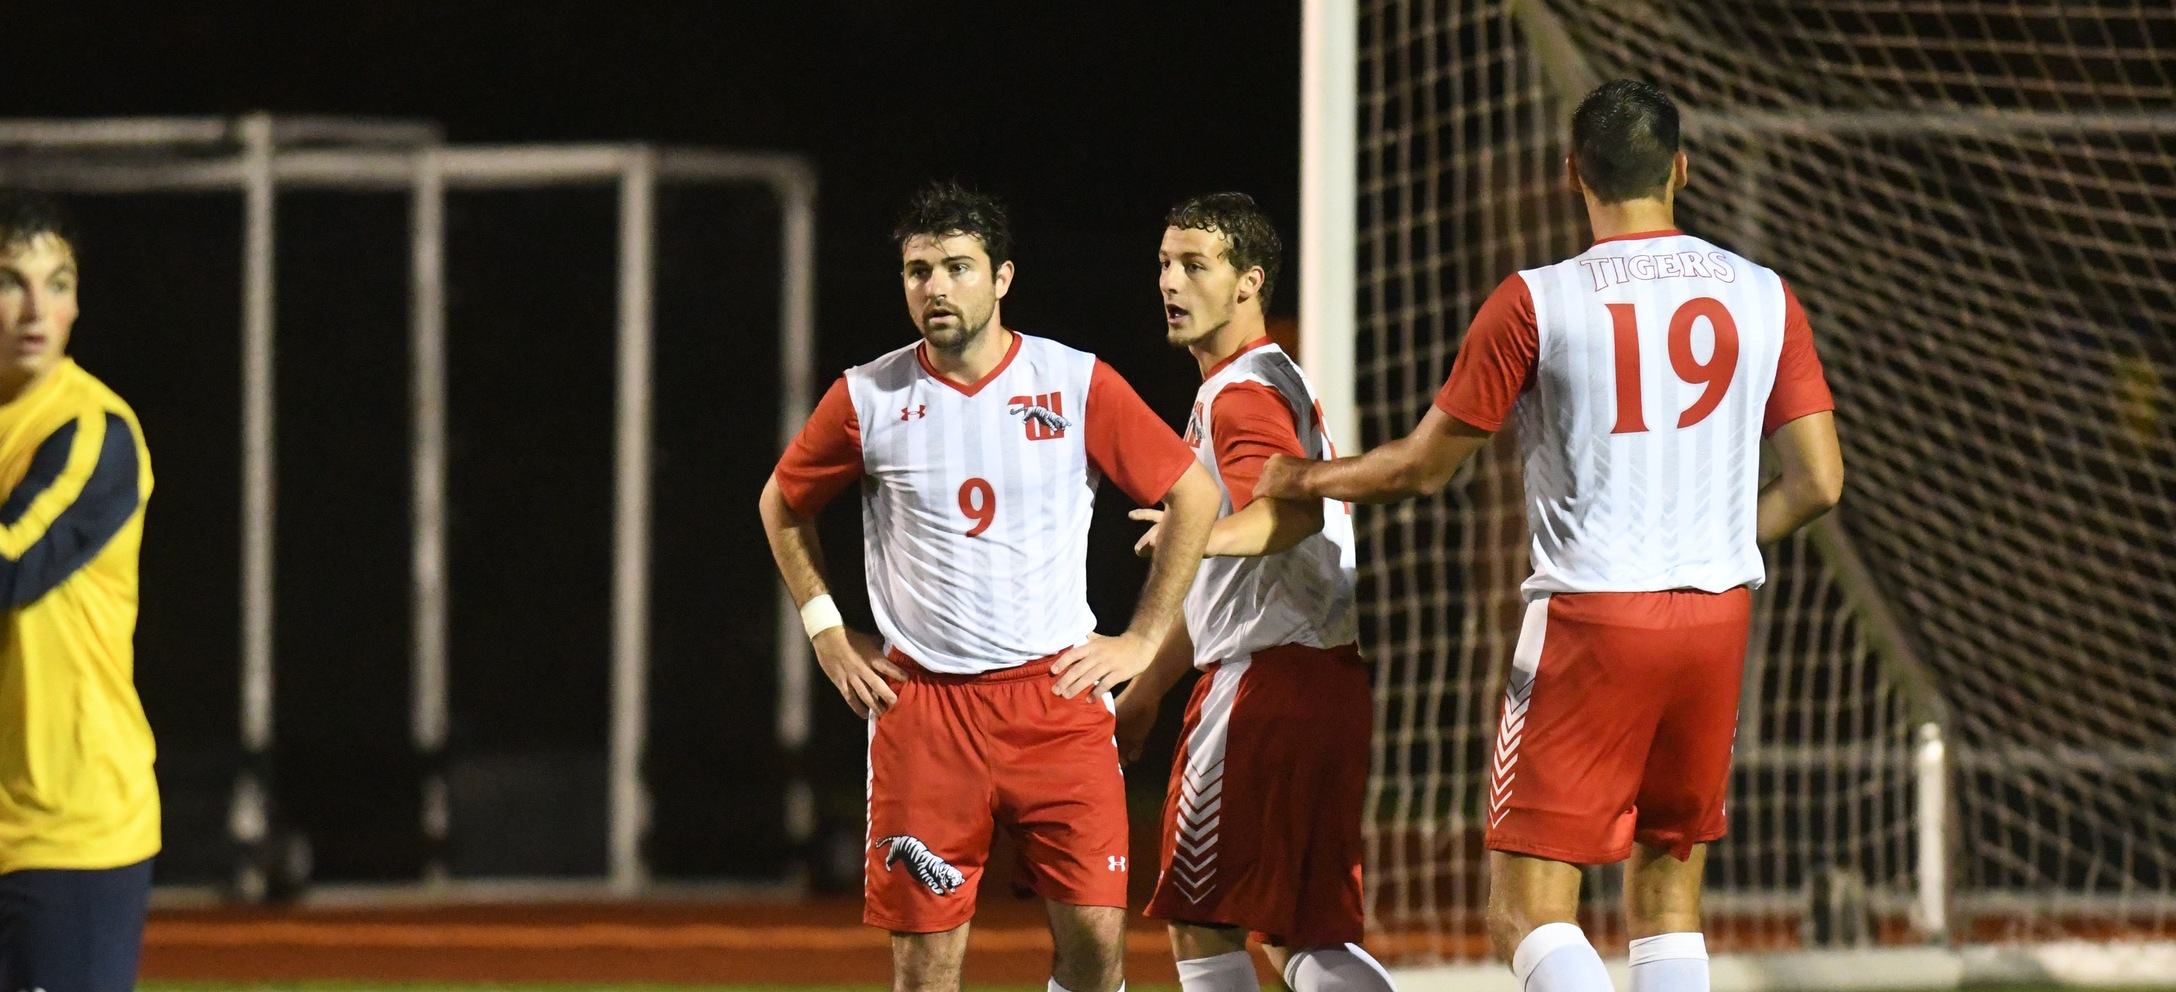 Wittenberg Men's Soccer Unable To Take Down DePauw